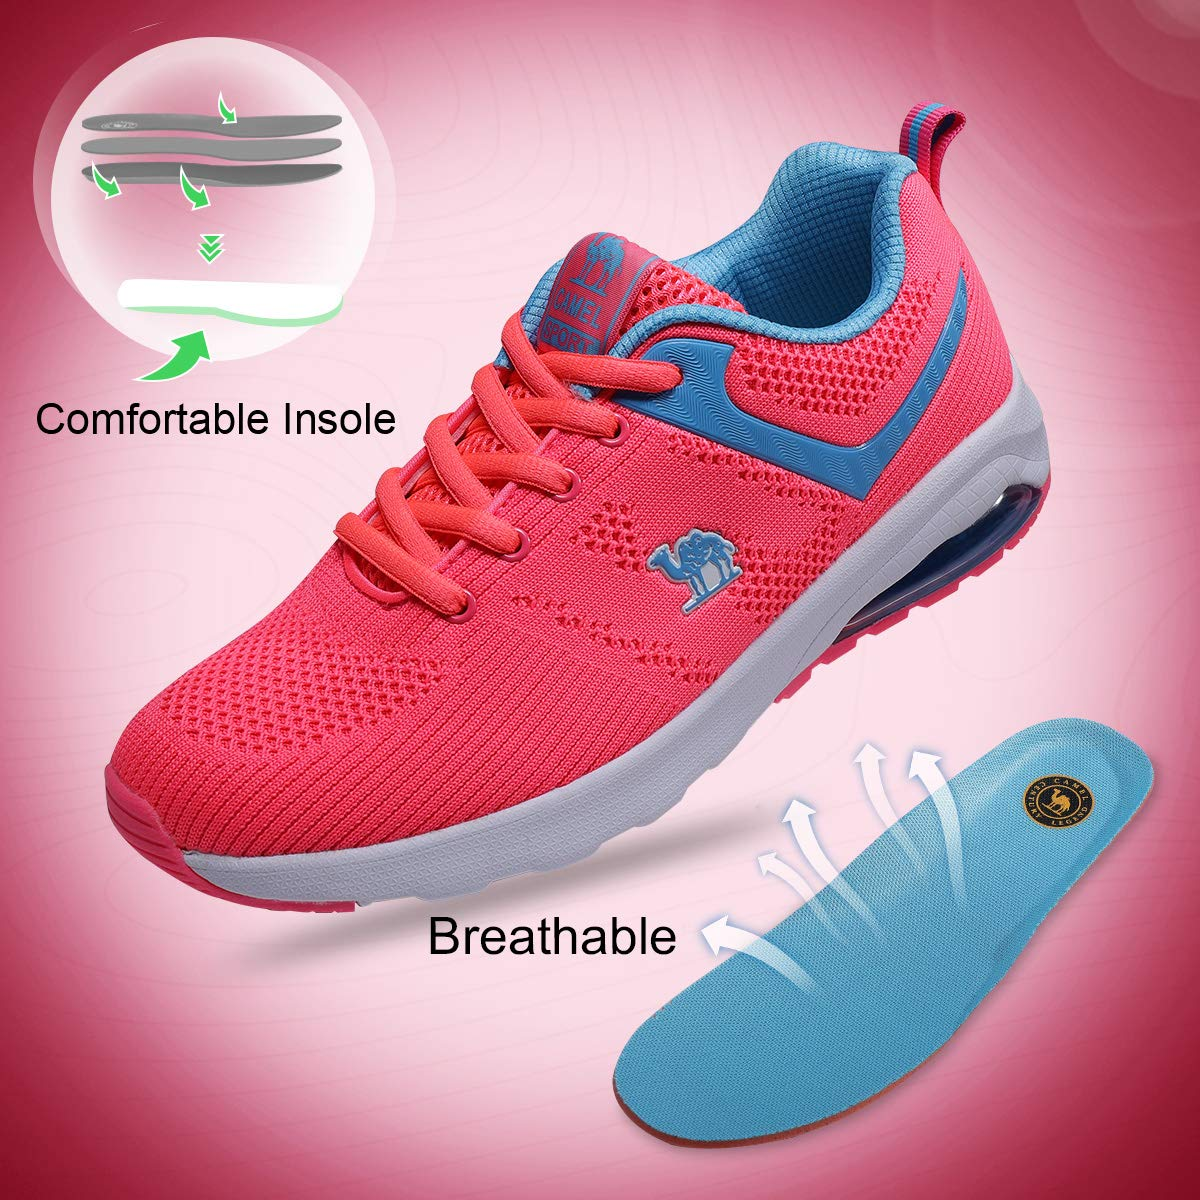 Camel Athletic Shoes Women Trail Running Breathable Lightweight Sports Shoes Walking Gym Training